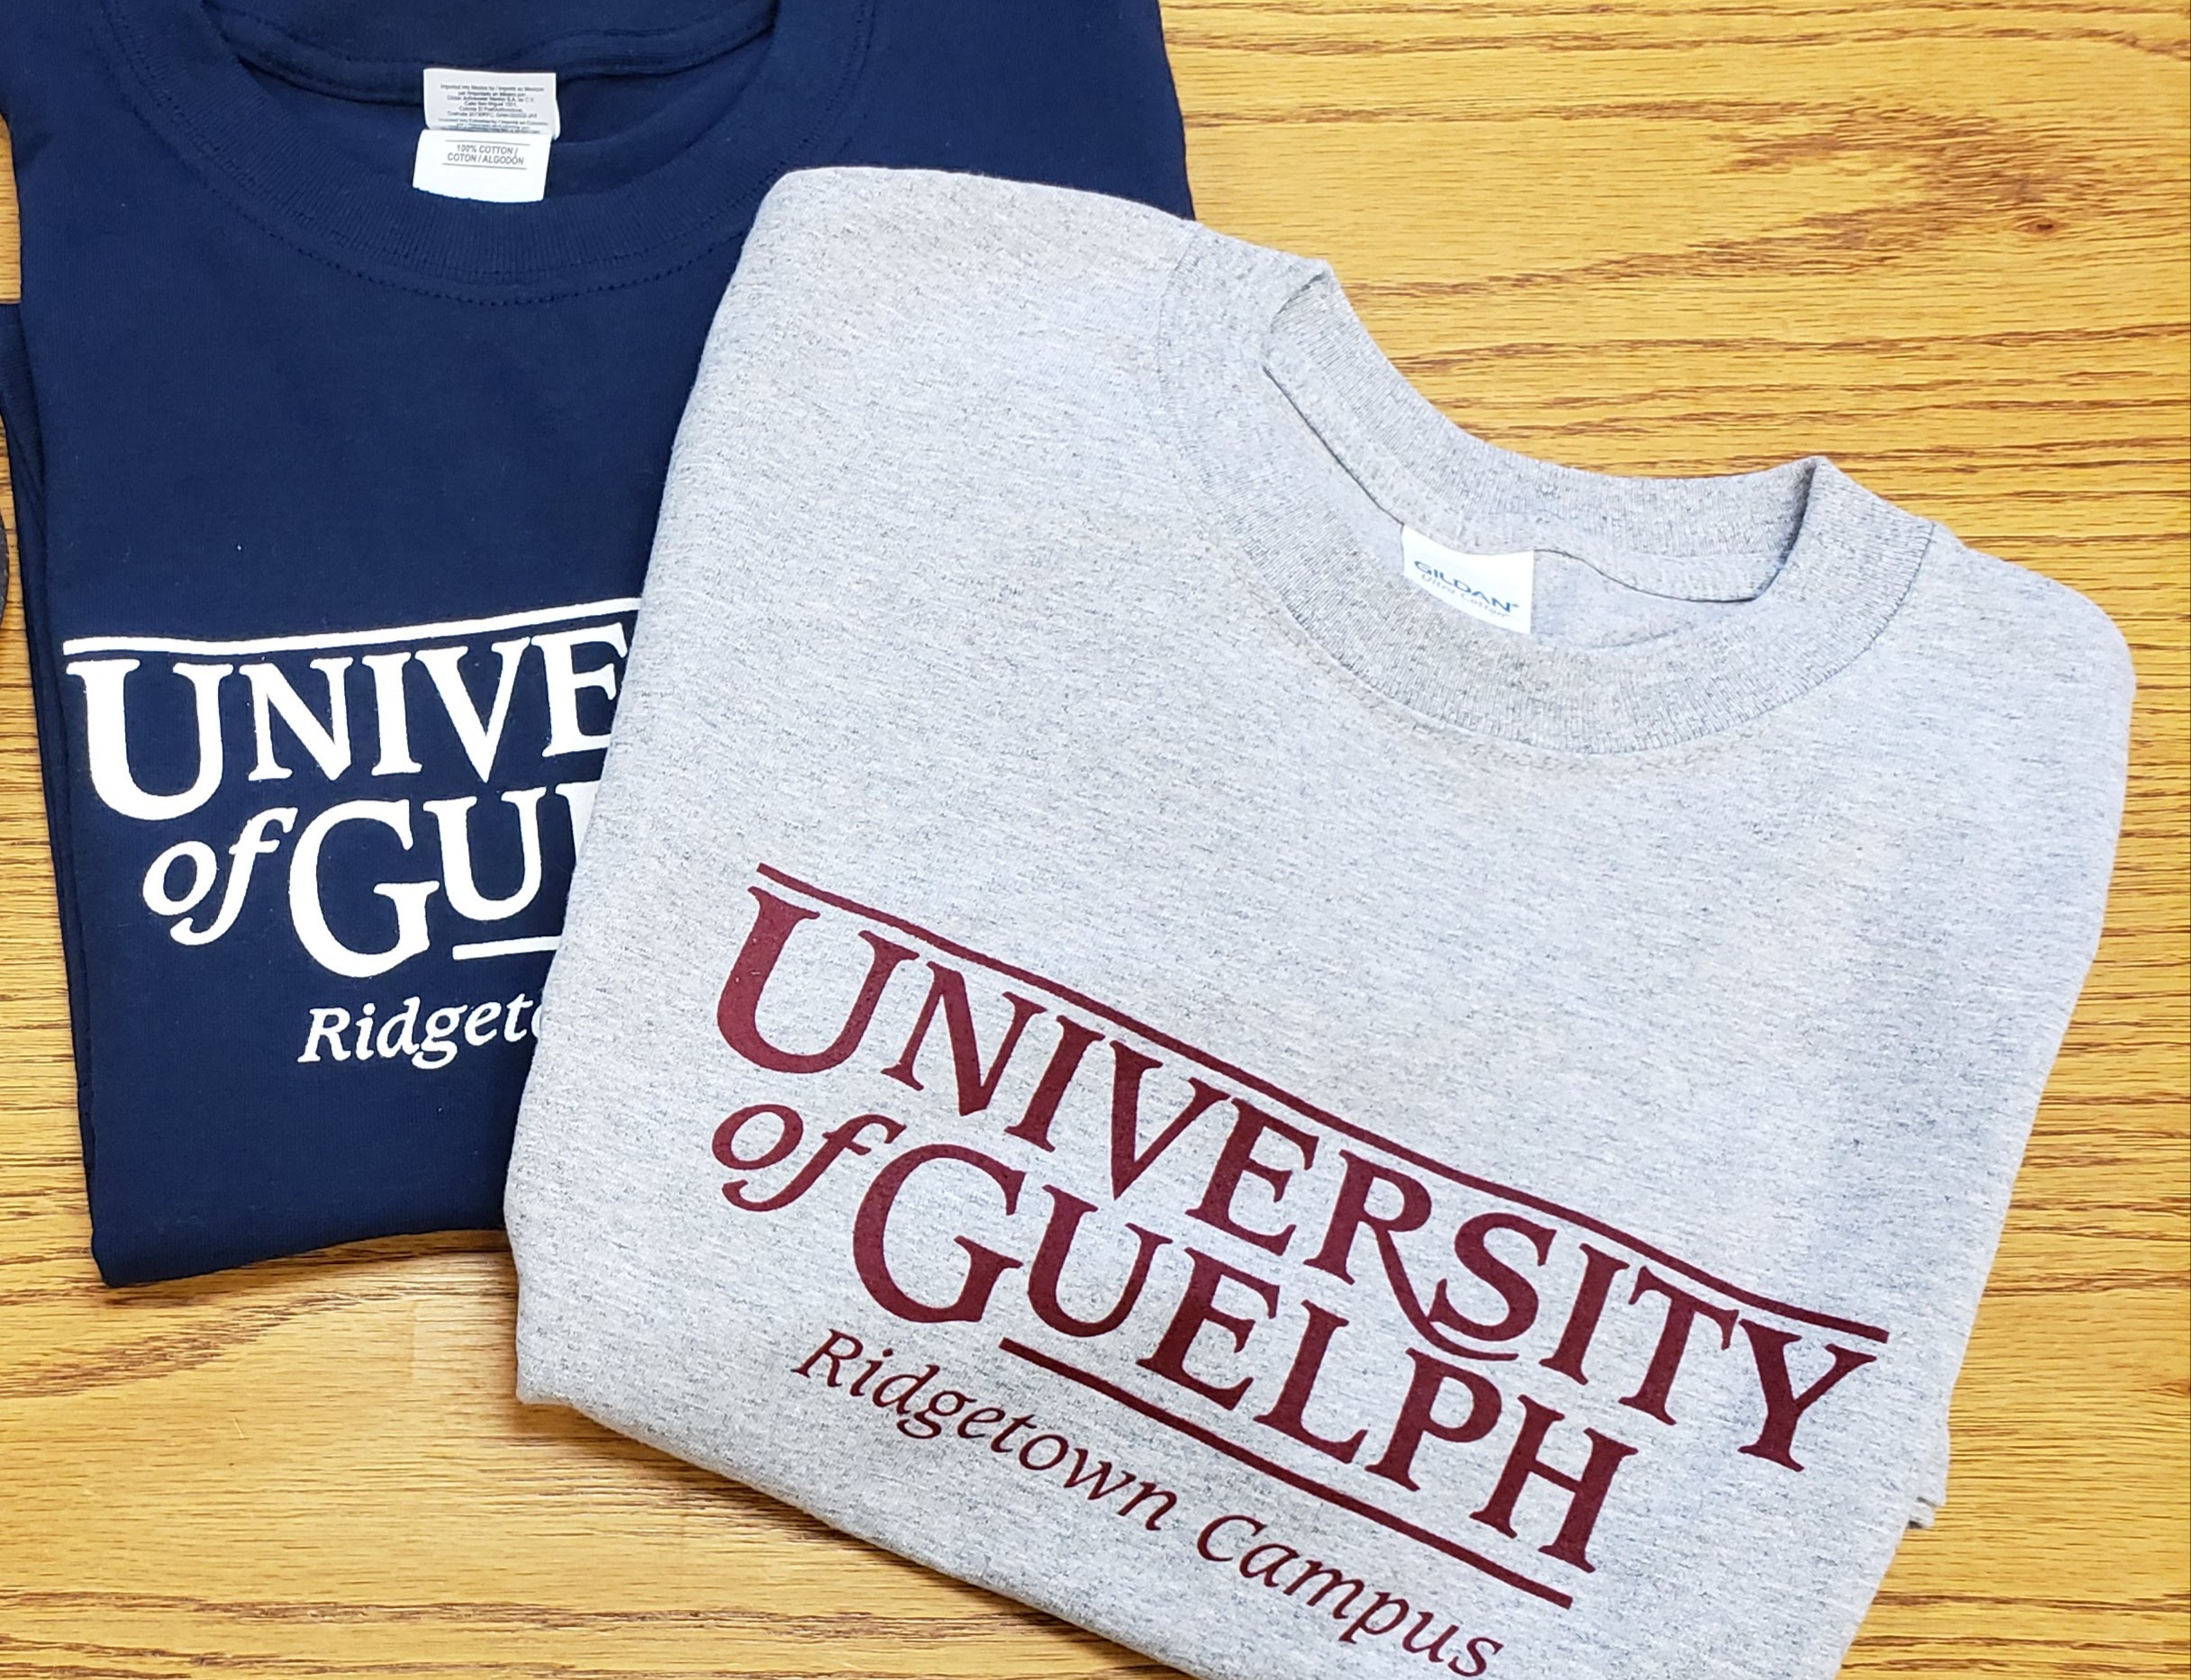 Campus Clothing